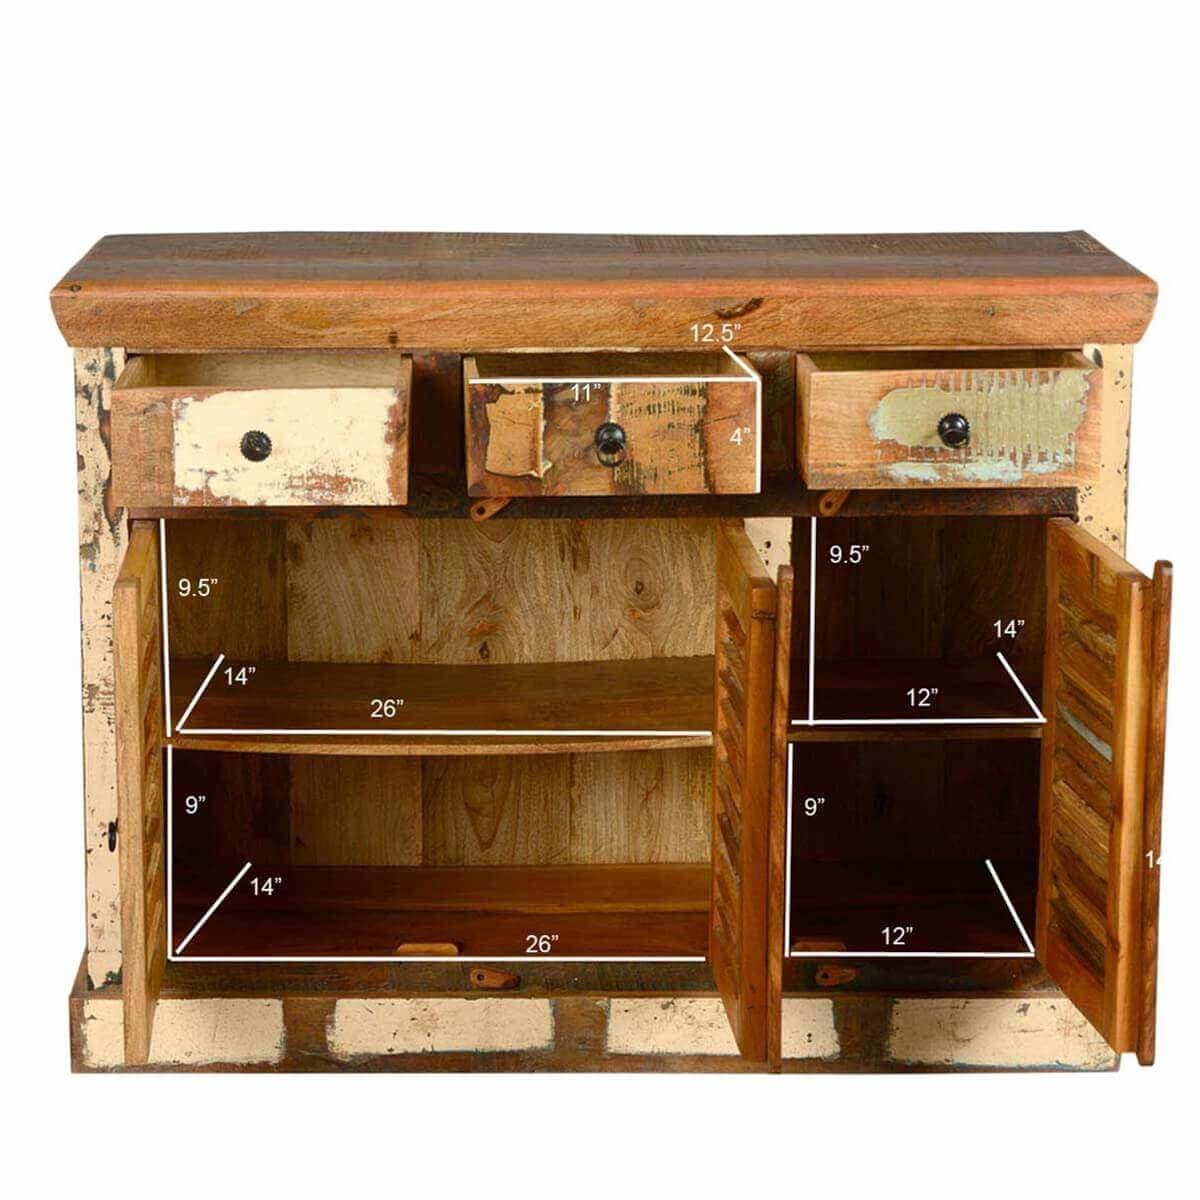 Ordway rustic reclaimed wood door drawer sideboard cabinet